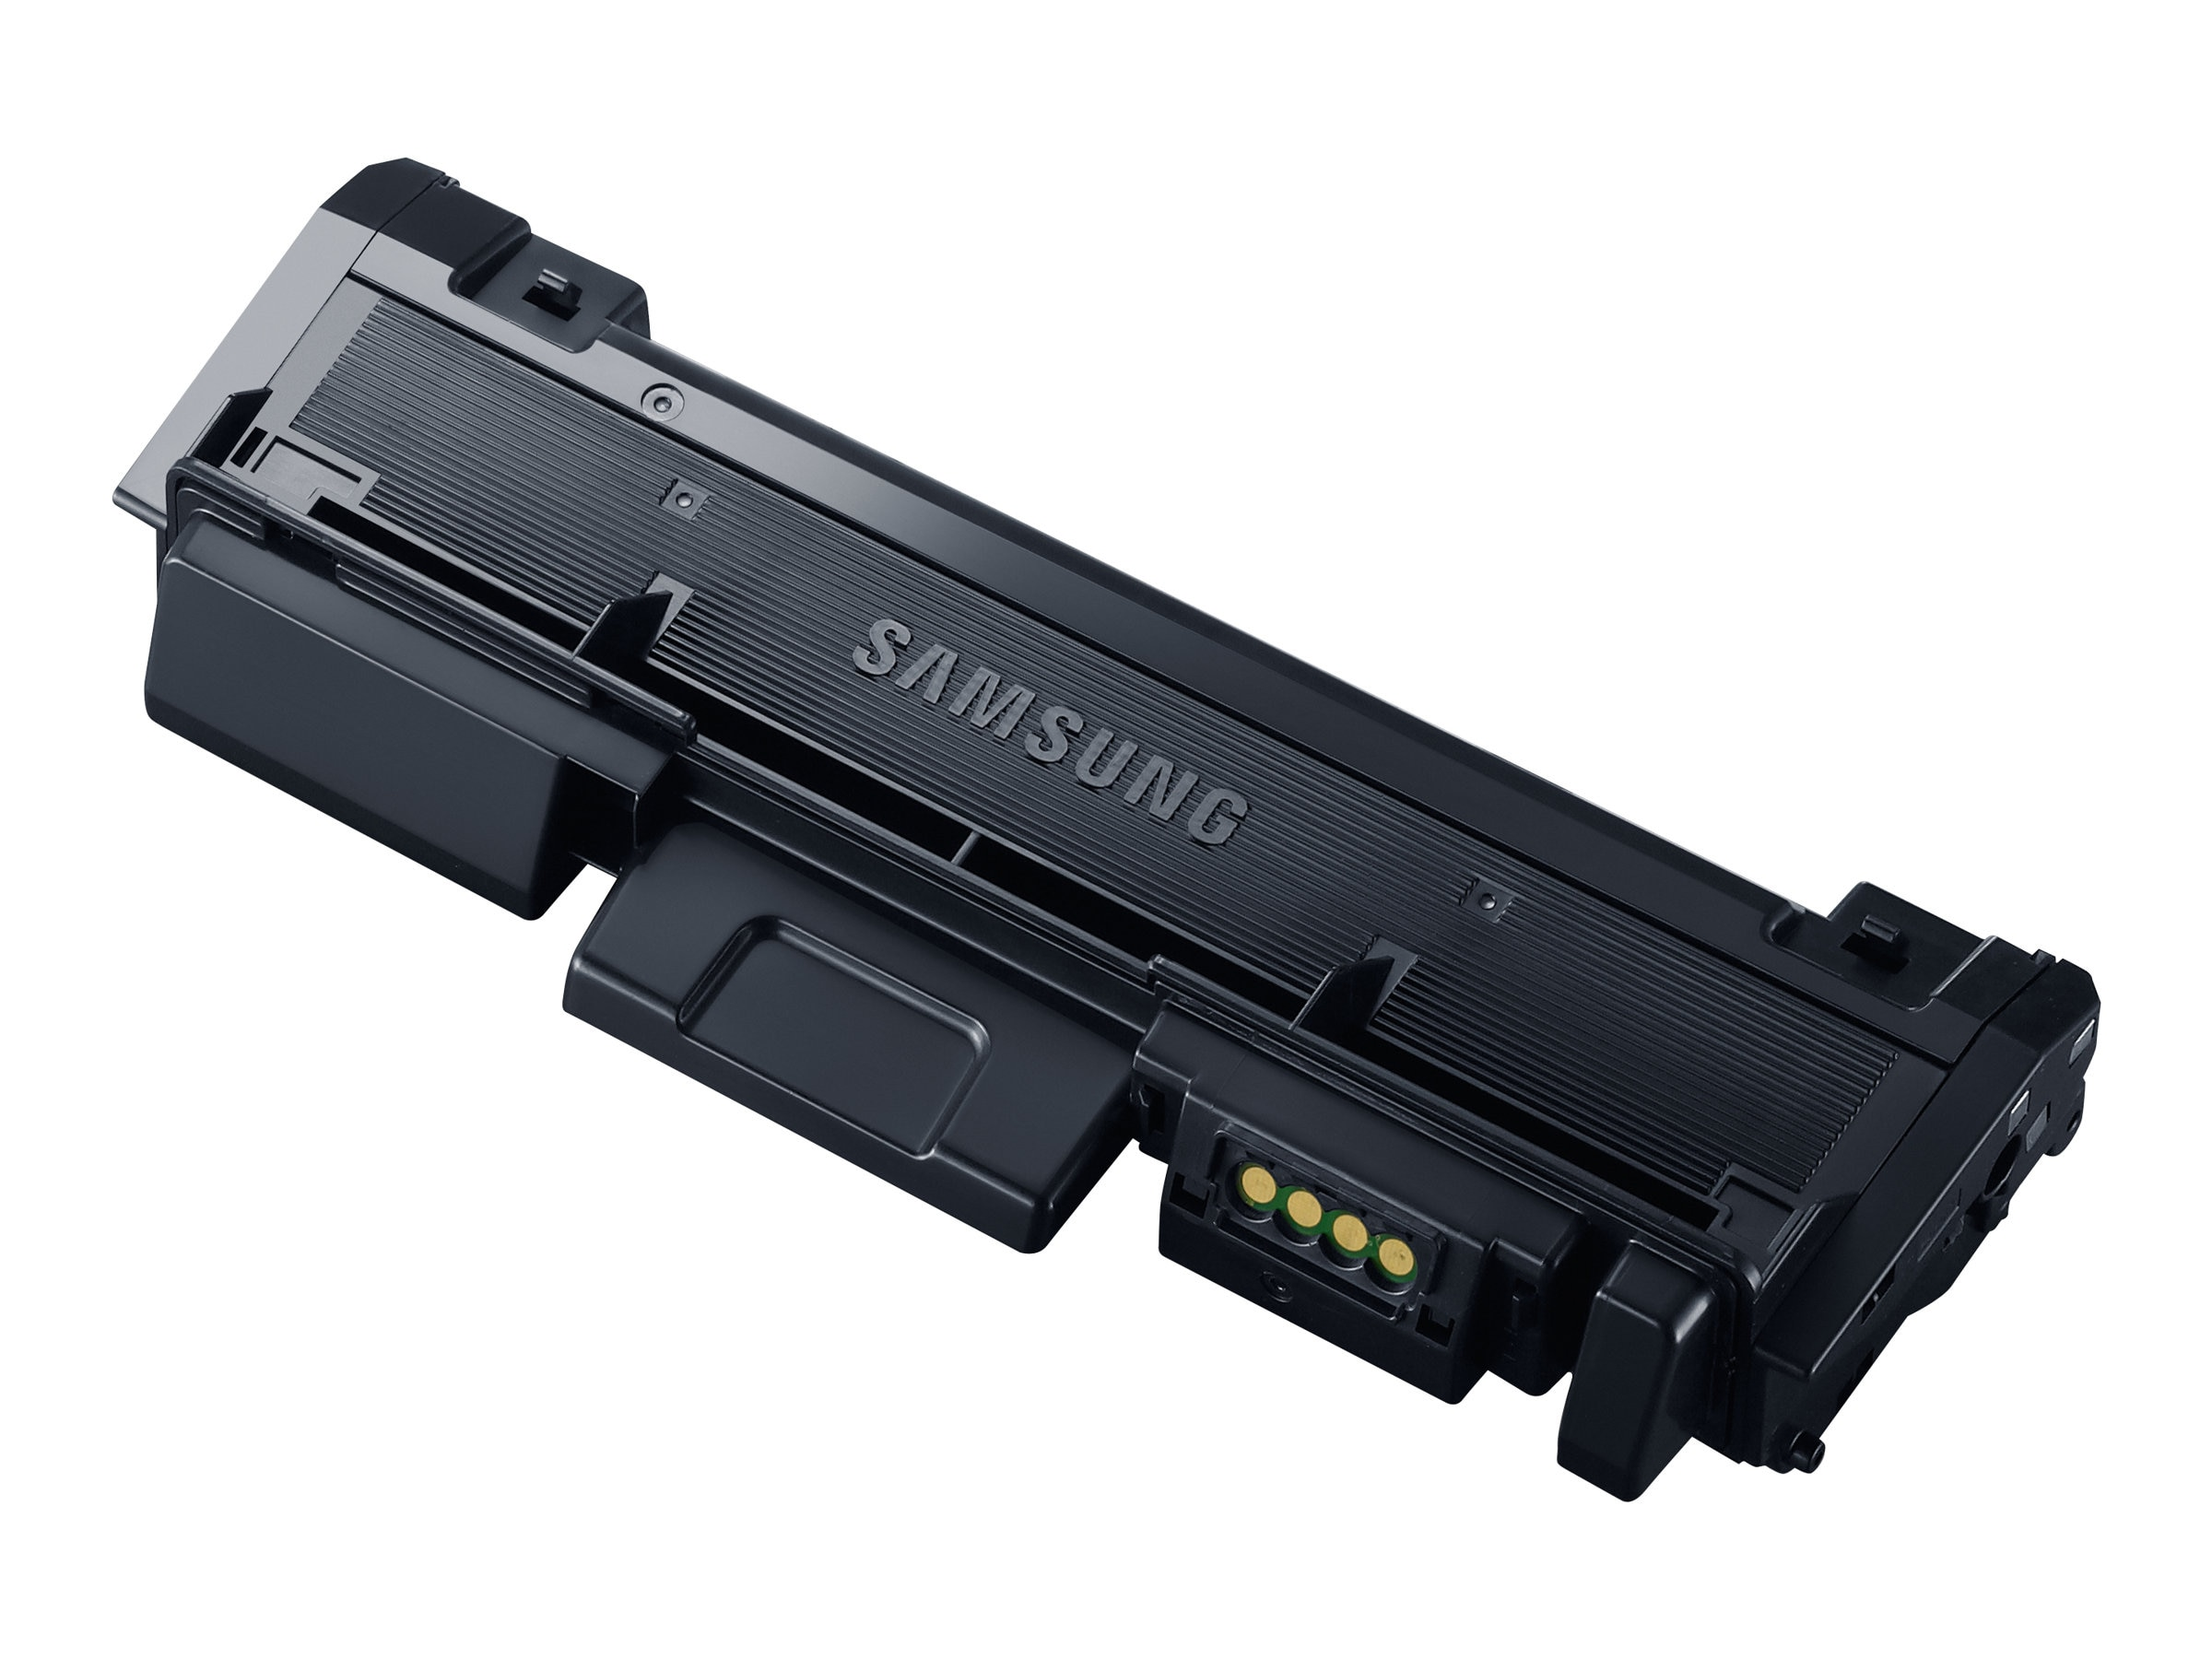 Samsung Black Toner Cartridge for Xpress SL-M2625, SL-M2626, SL-M2825, SL-M2826, MLT-D116L